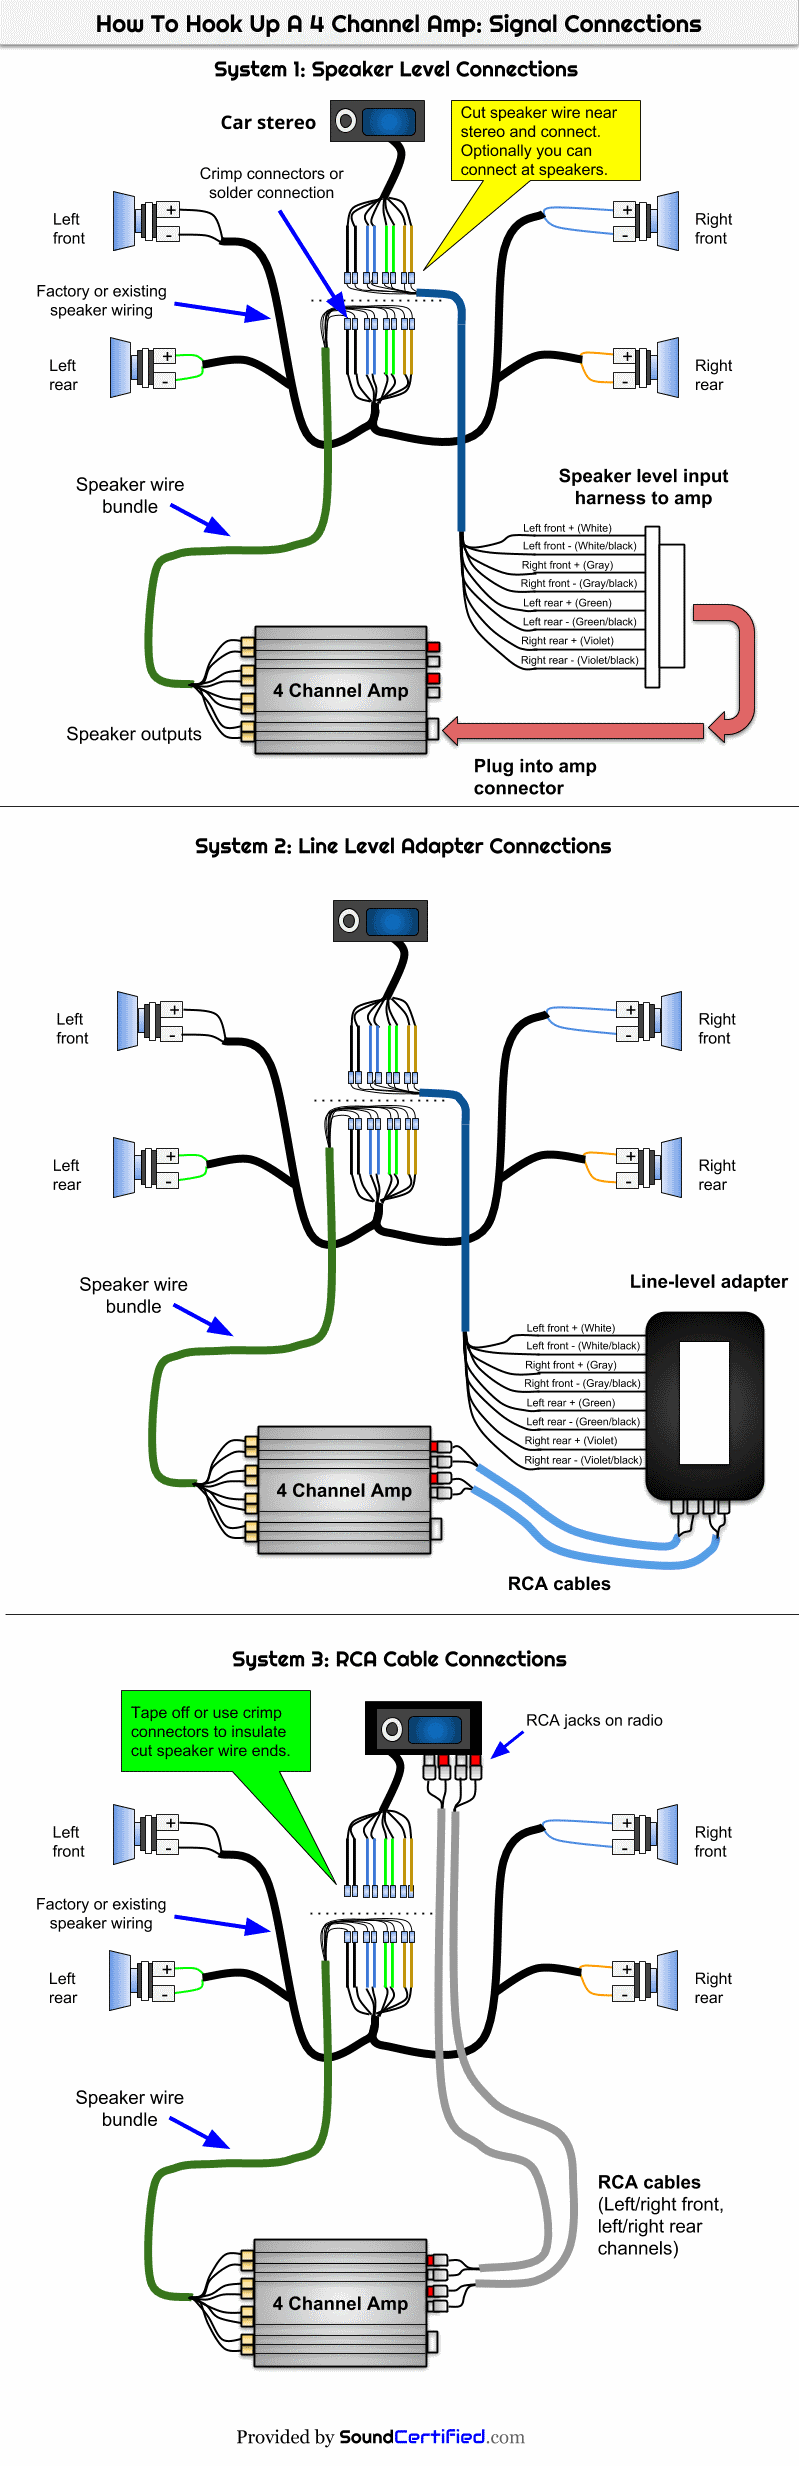 How To Hook Up A 4 Channel Amp Front And Rear Speakers Car Head Unit Wire Harness Same As Computer Signal Connection Diagram